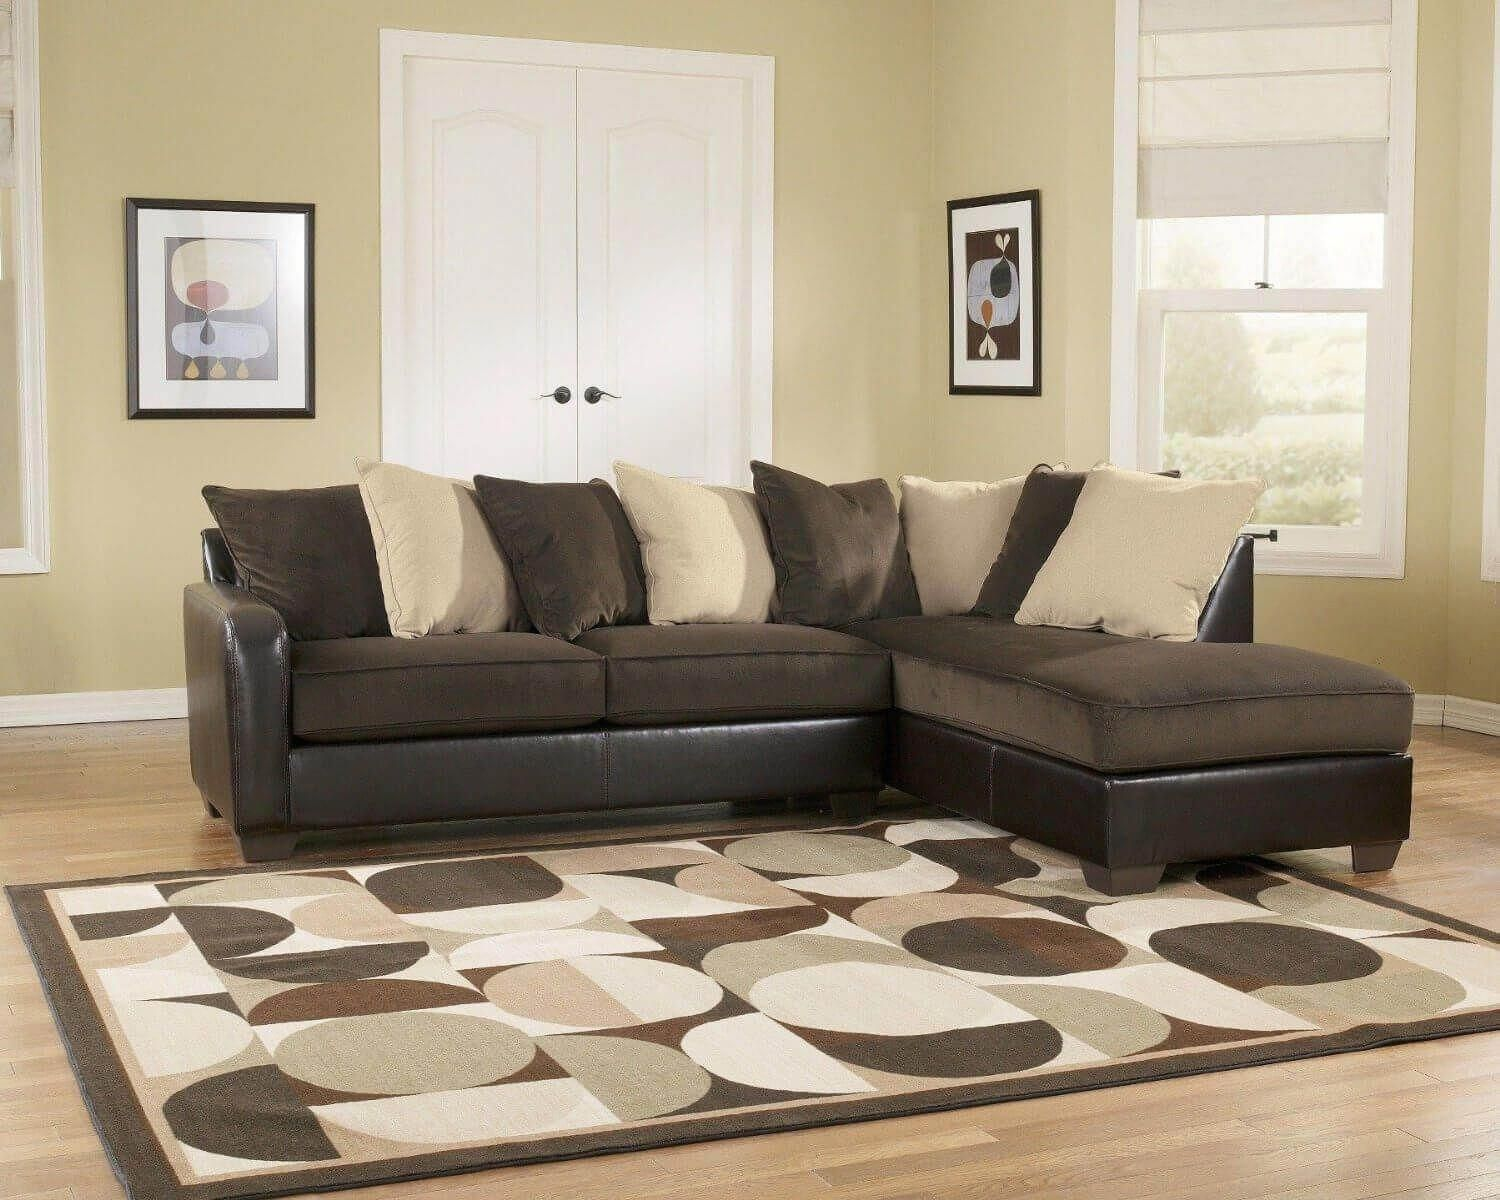 Leather sofa sectionals under 1000 cheaplivingroomsets